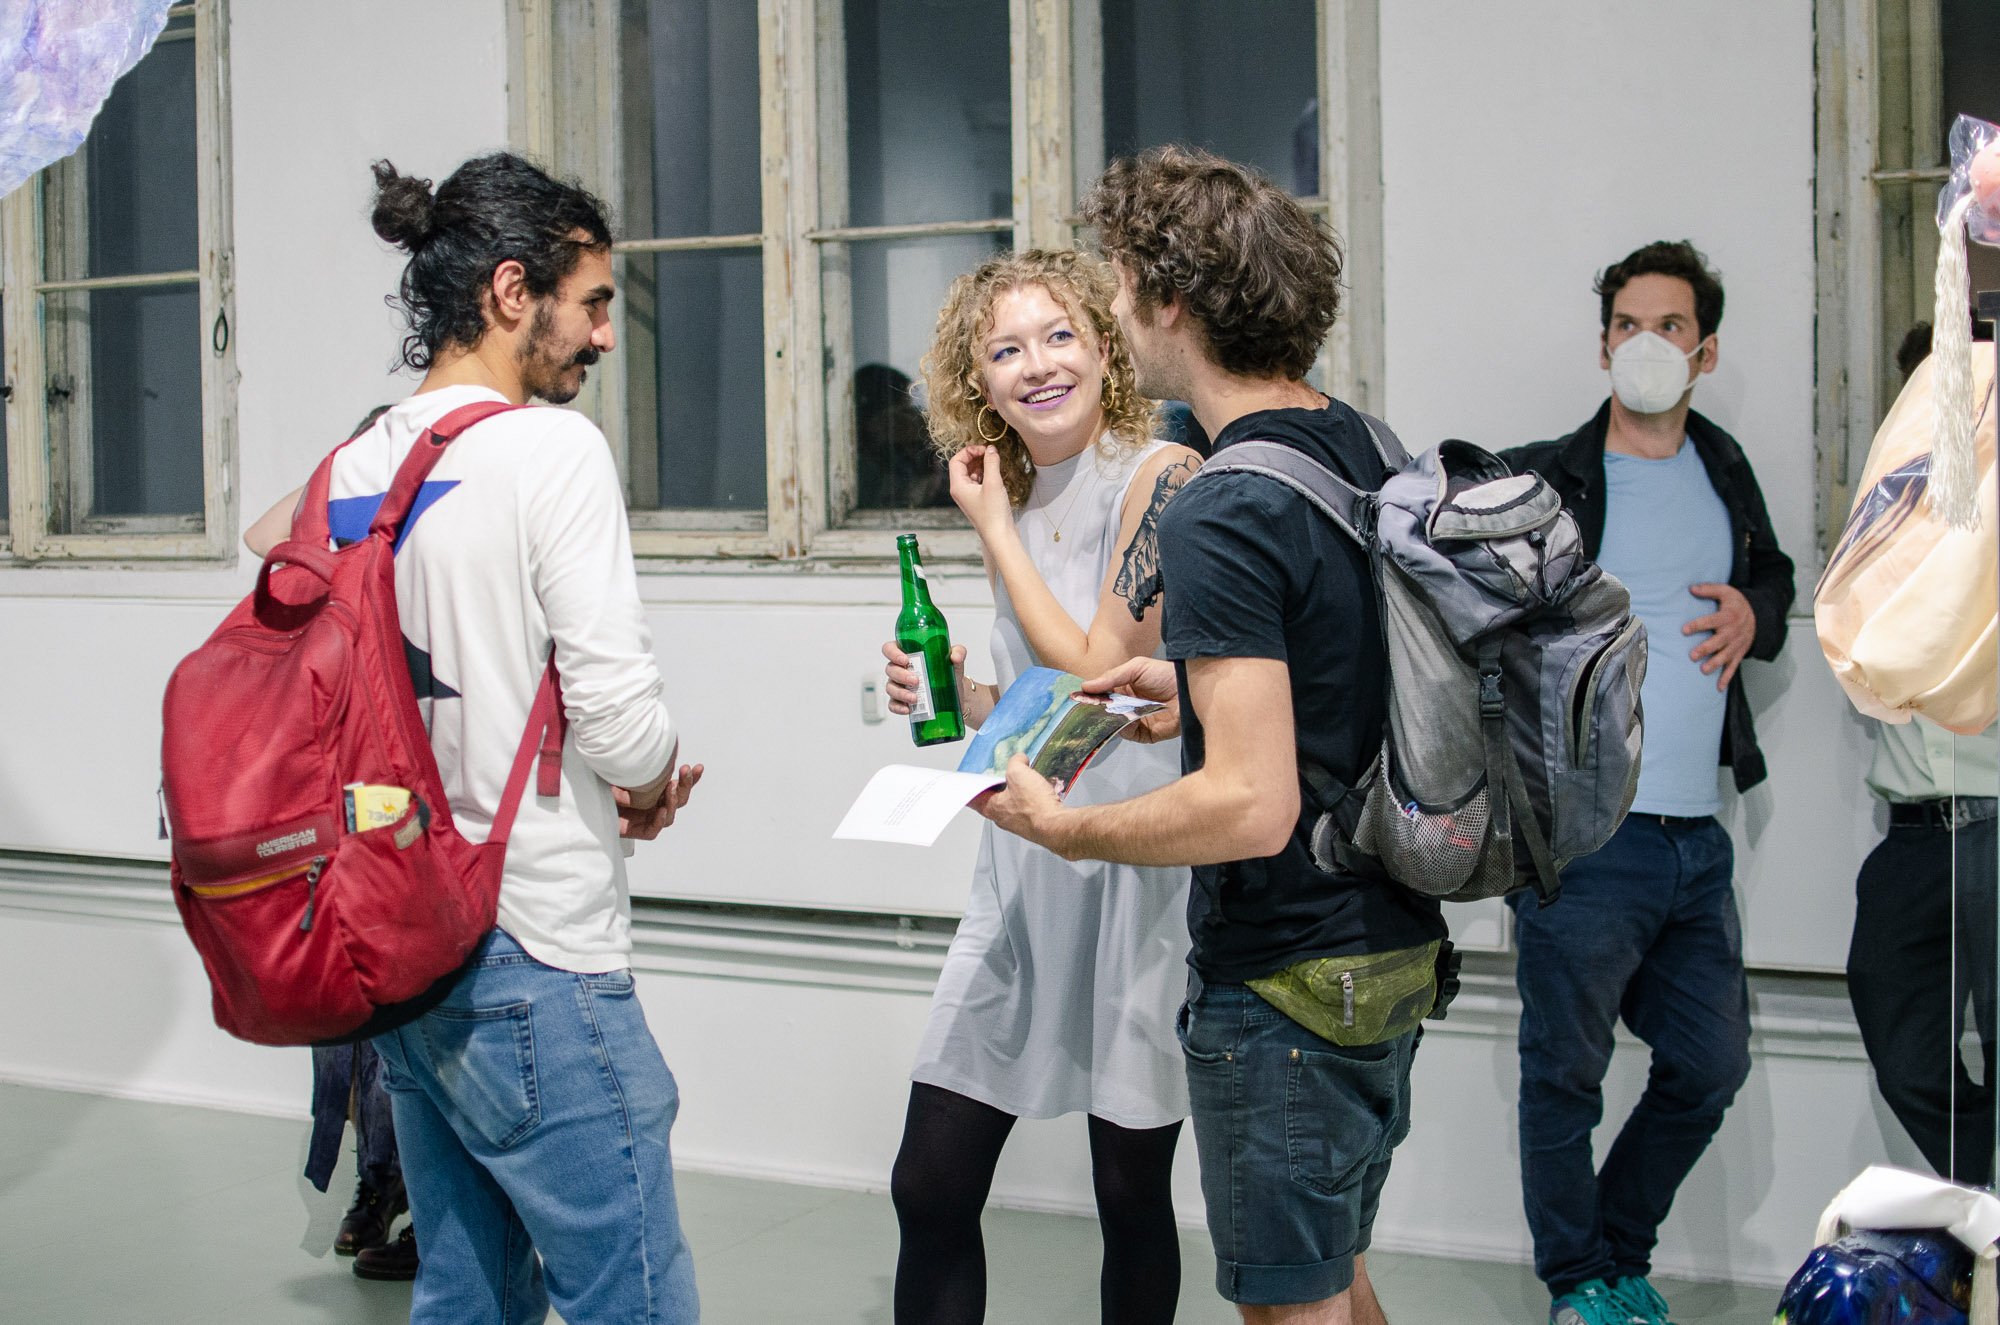 PKRD-48-Airy-Democratic-Spirituality-vernissage-PK-at-Alte-Handlesschule-20.08.21-Fanni-Papp-for-PK-21